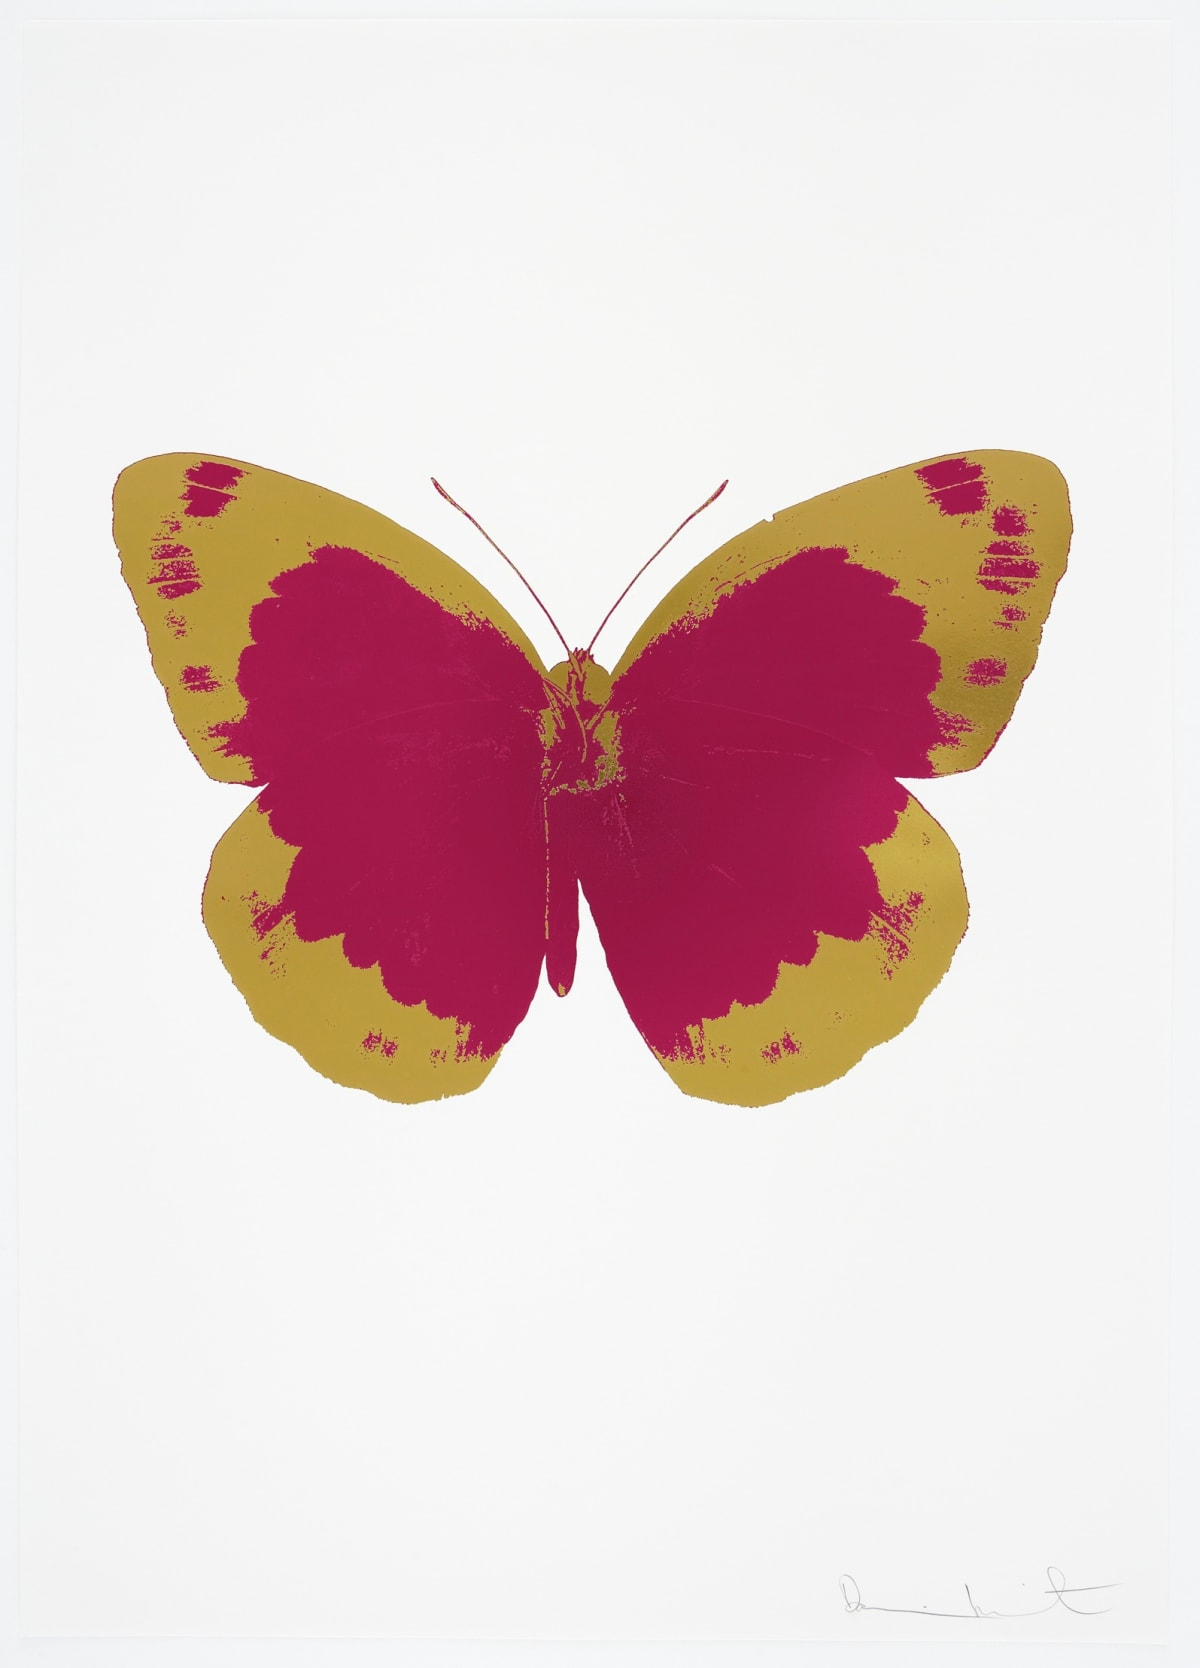 Damien Hirst The Souls II - Fuchsia Pink/Oriental Gold/Blind Impression, 2010 2 colour foil block on 300gsm Arches 88 archival paper. Signed and numbered. Published by Paul Stolper and Other Criteria 72 x 51cm OC7853 / 658-36 Edition of 15